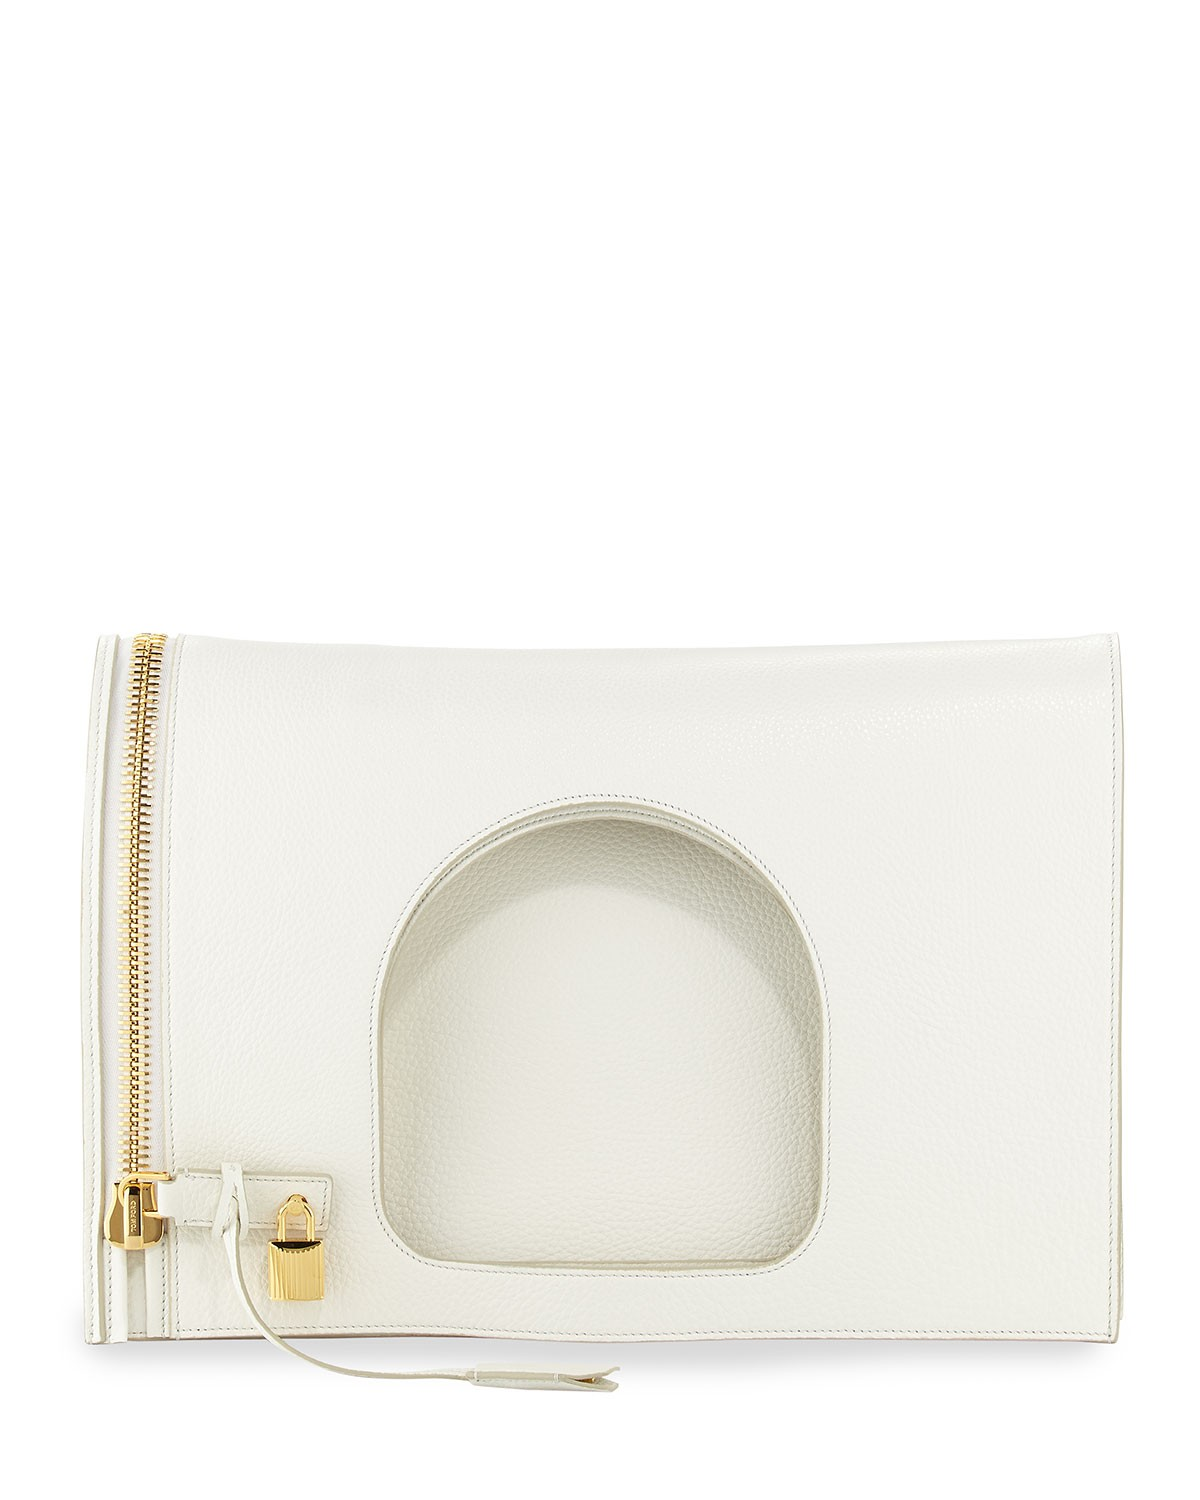 Alix Leather Padlock & Zip Shoulder Bag, White - Tom Ford